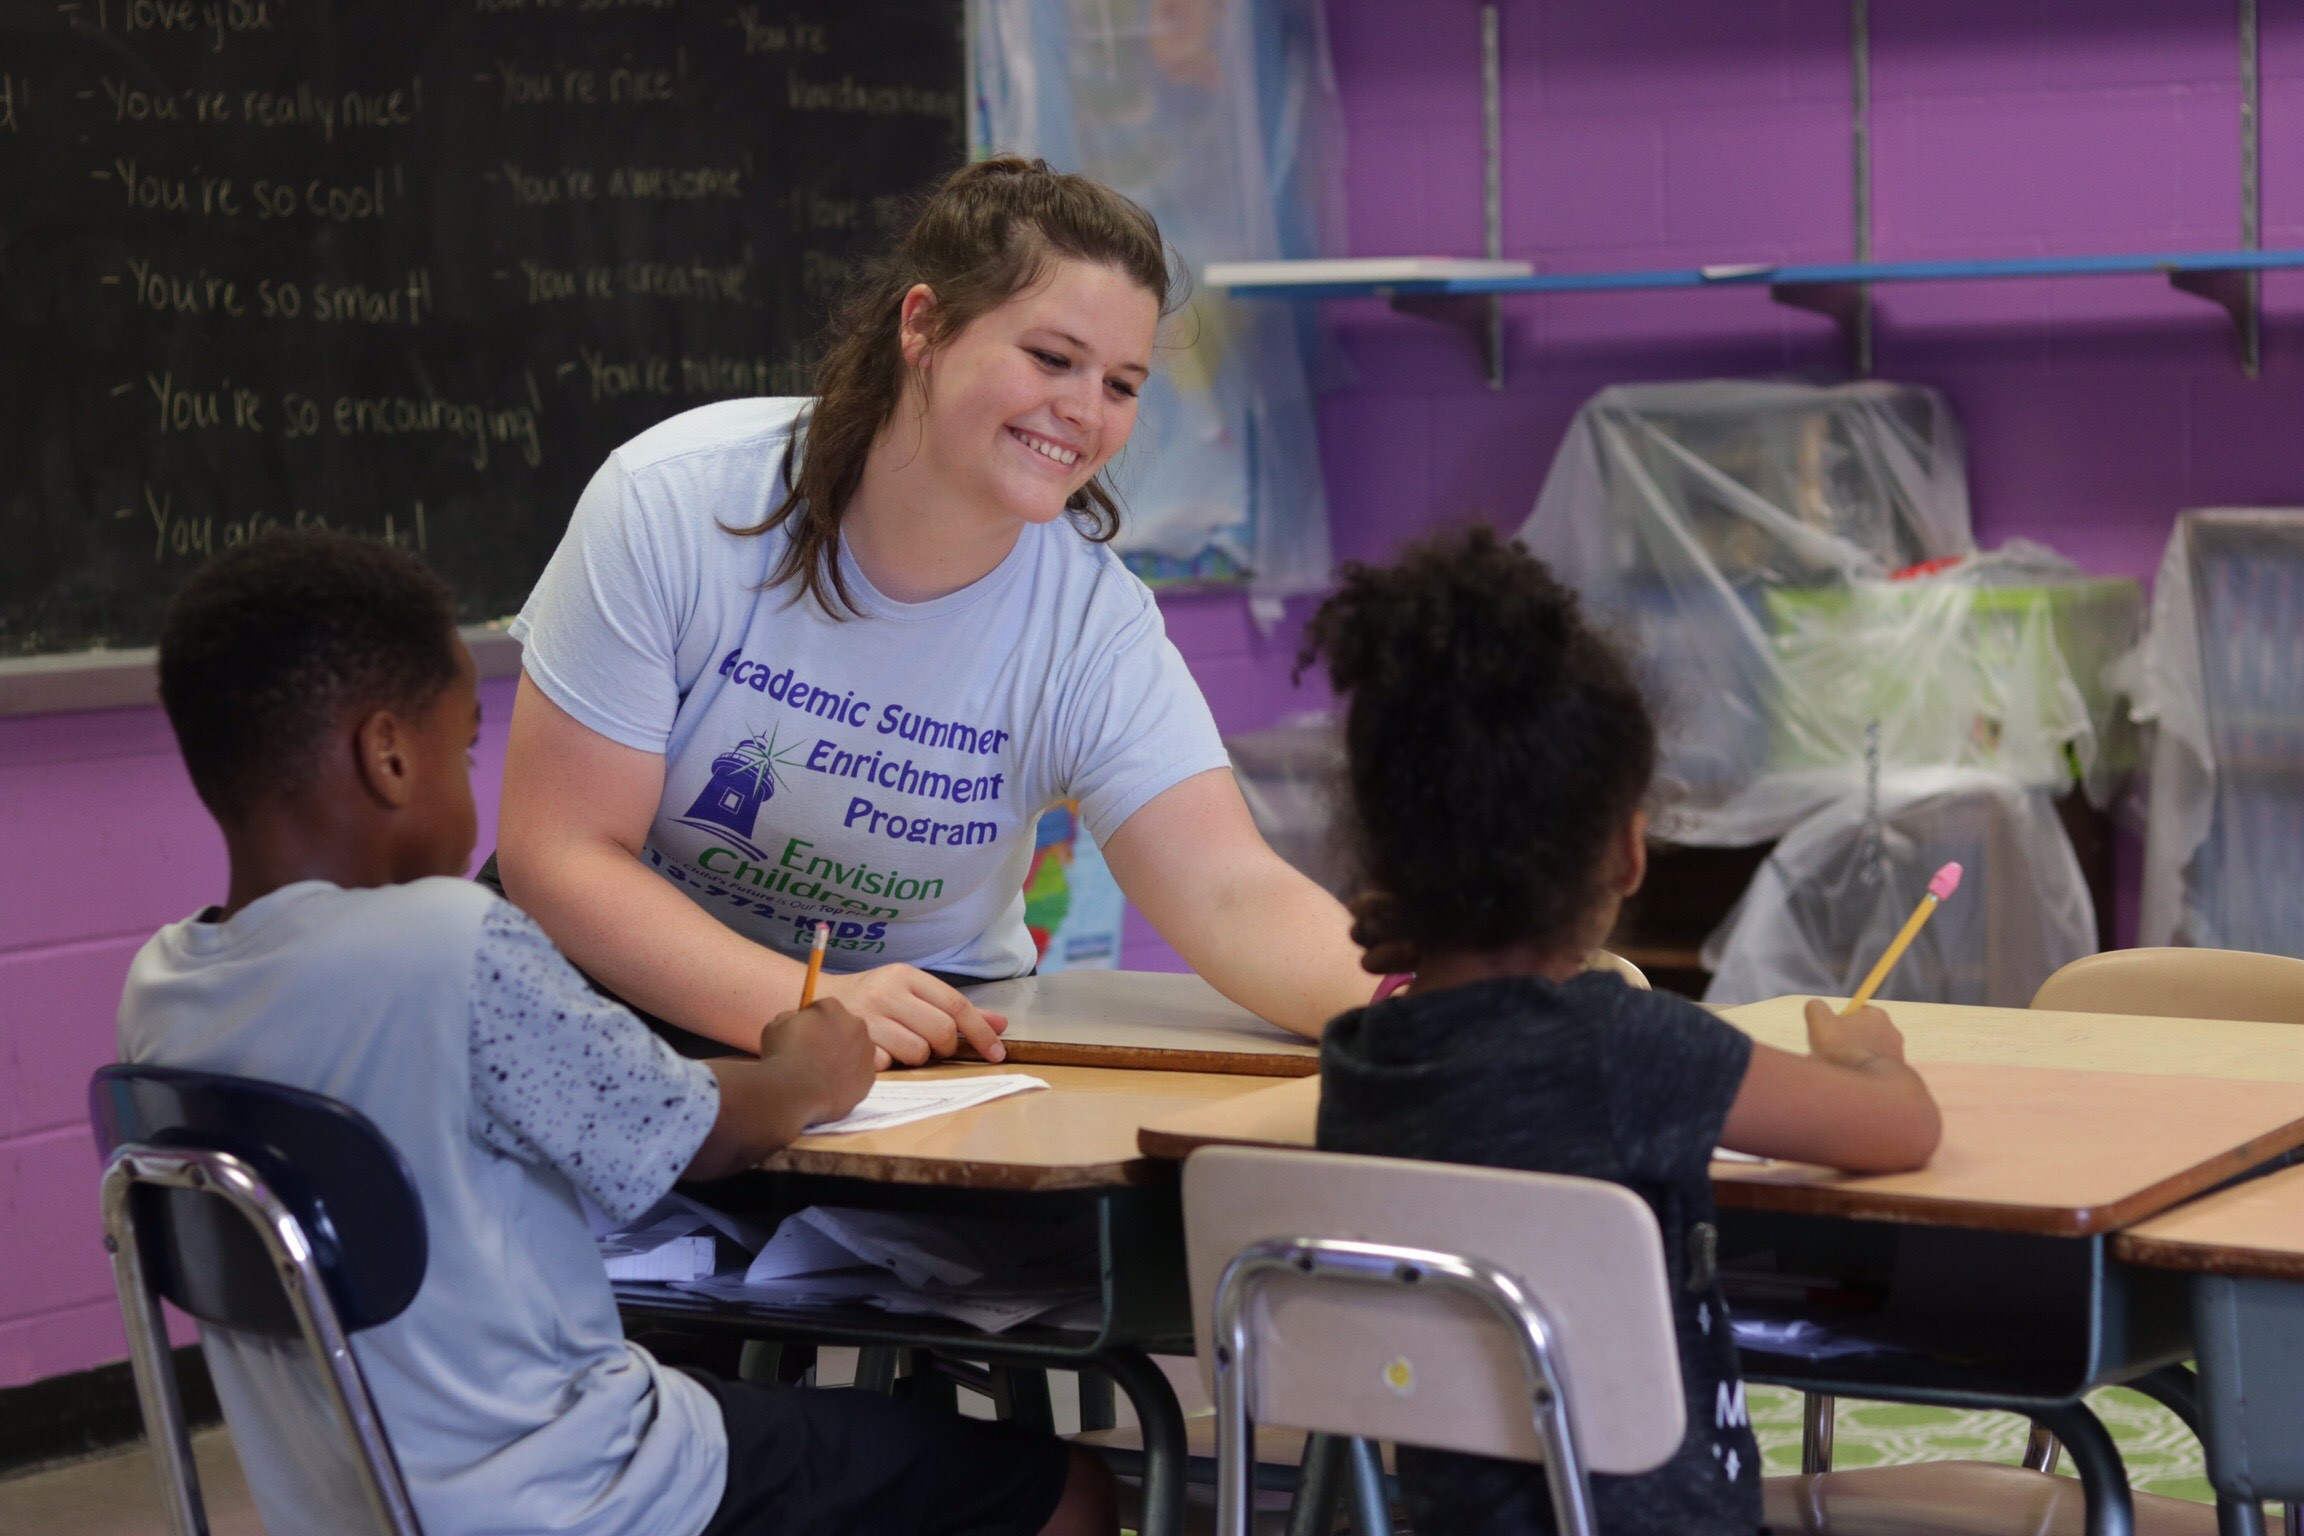 Envision Children is now enrolling for the 2019 summer academic enrichment program. Photo by Drew Jackson.